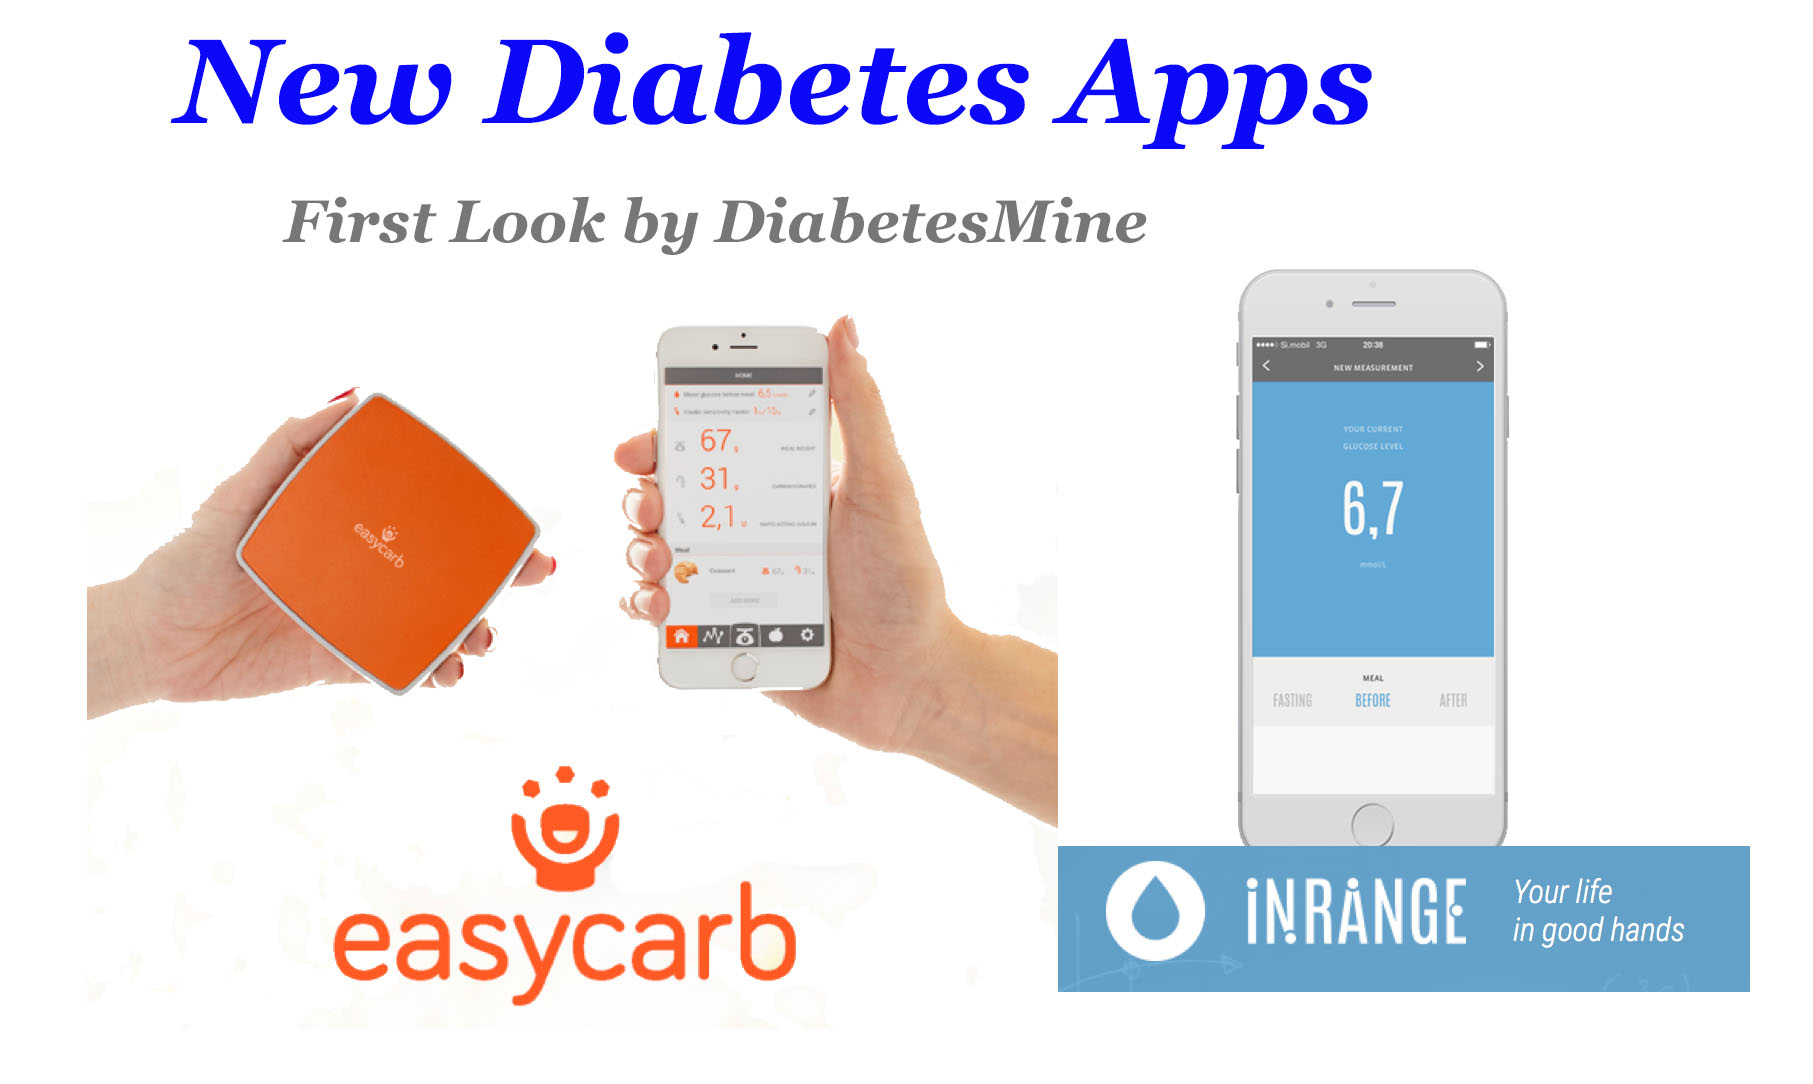 New Diabetes Apps